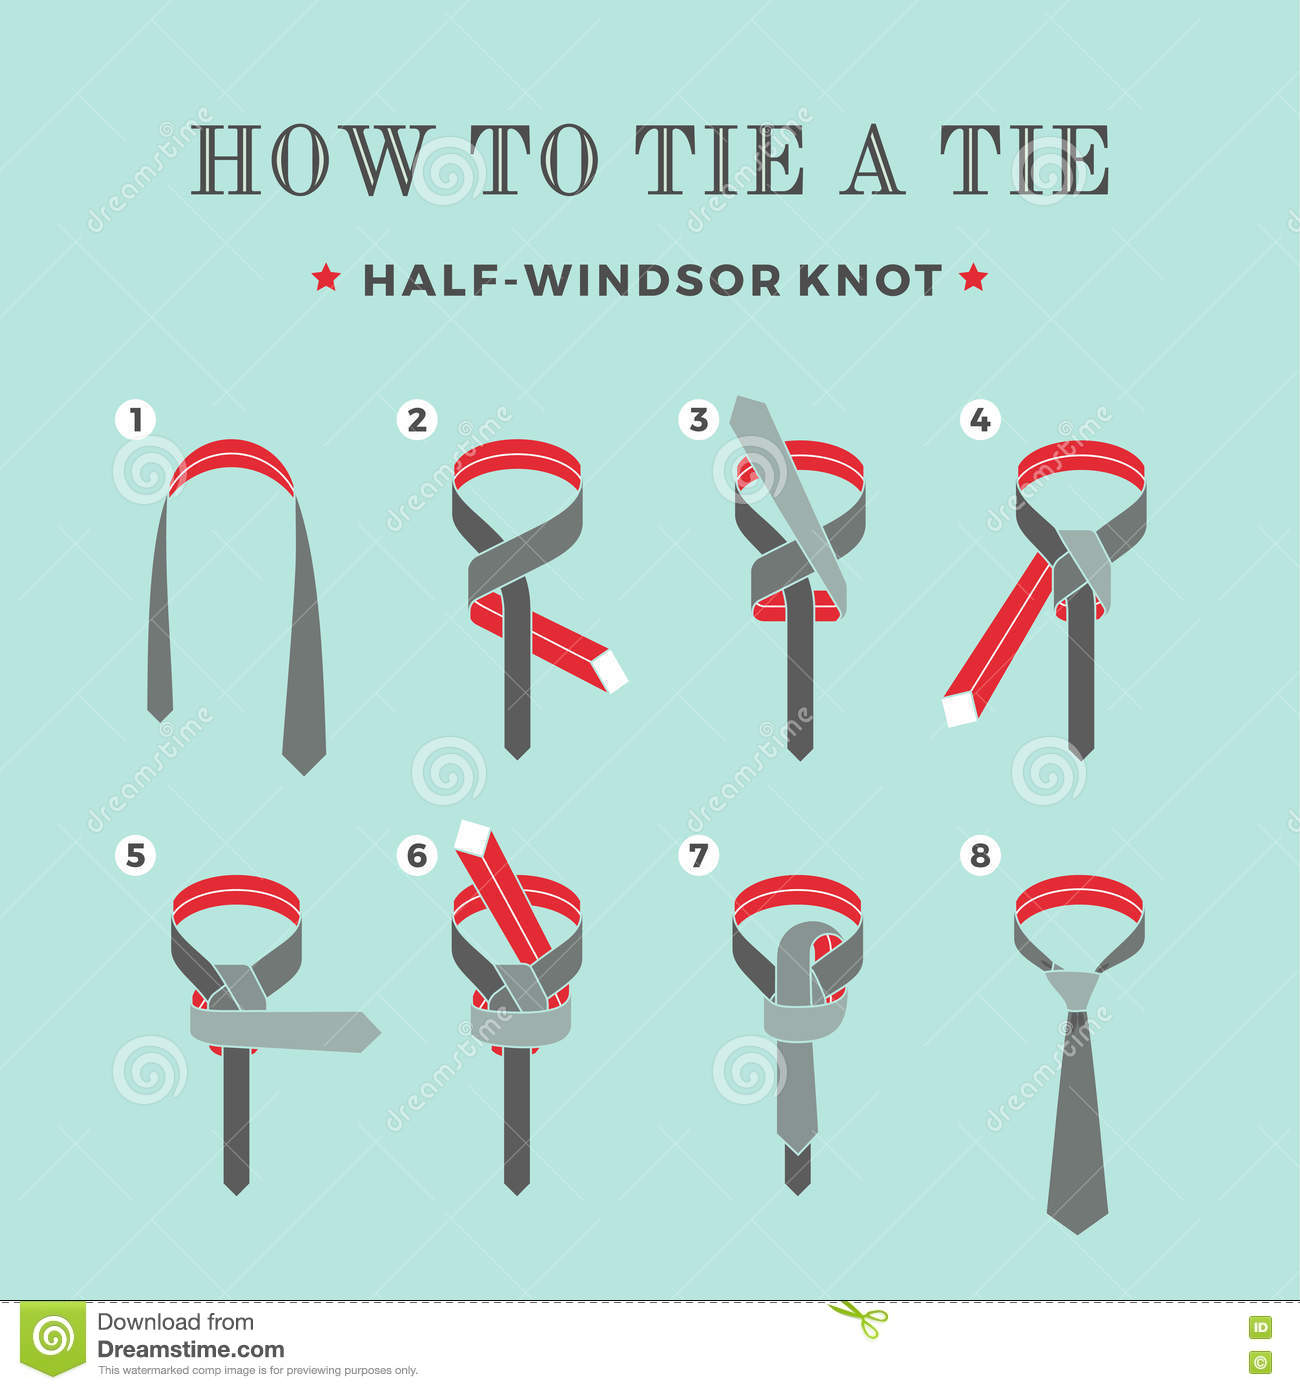 Instructions On How To Tie A Tie On The Turquoise Background Of How To Tie A